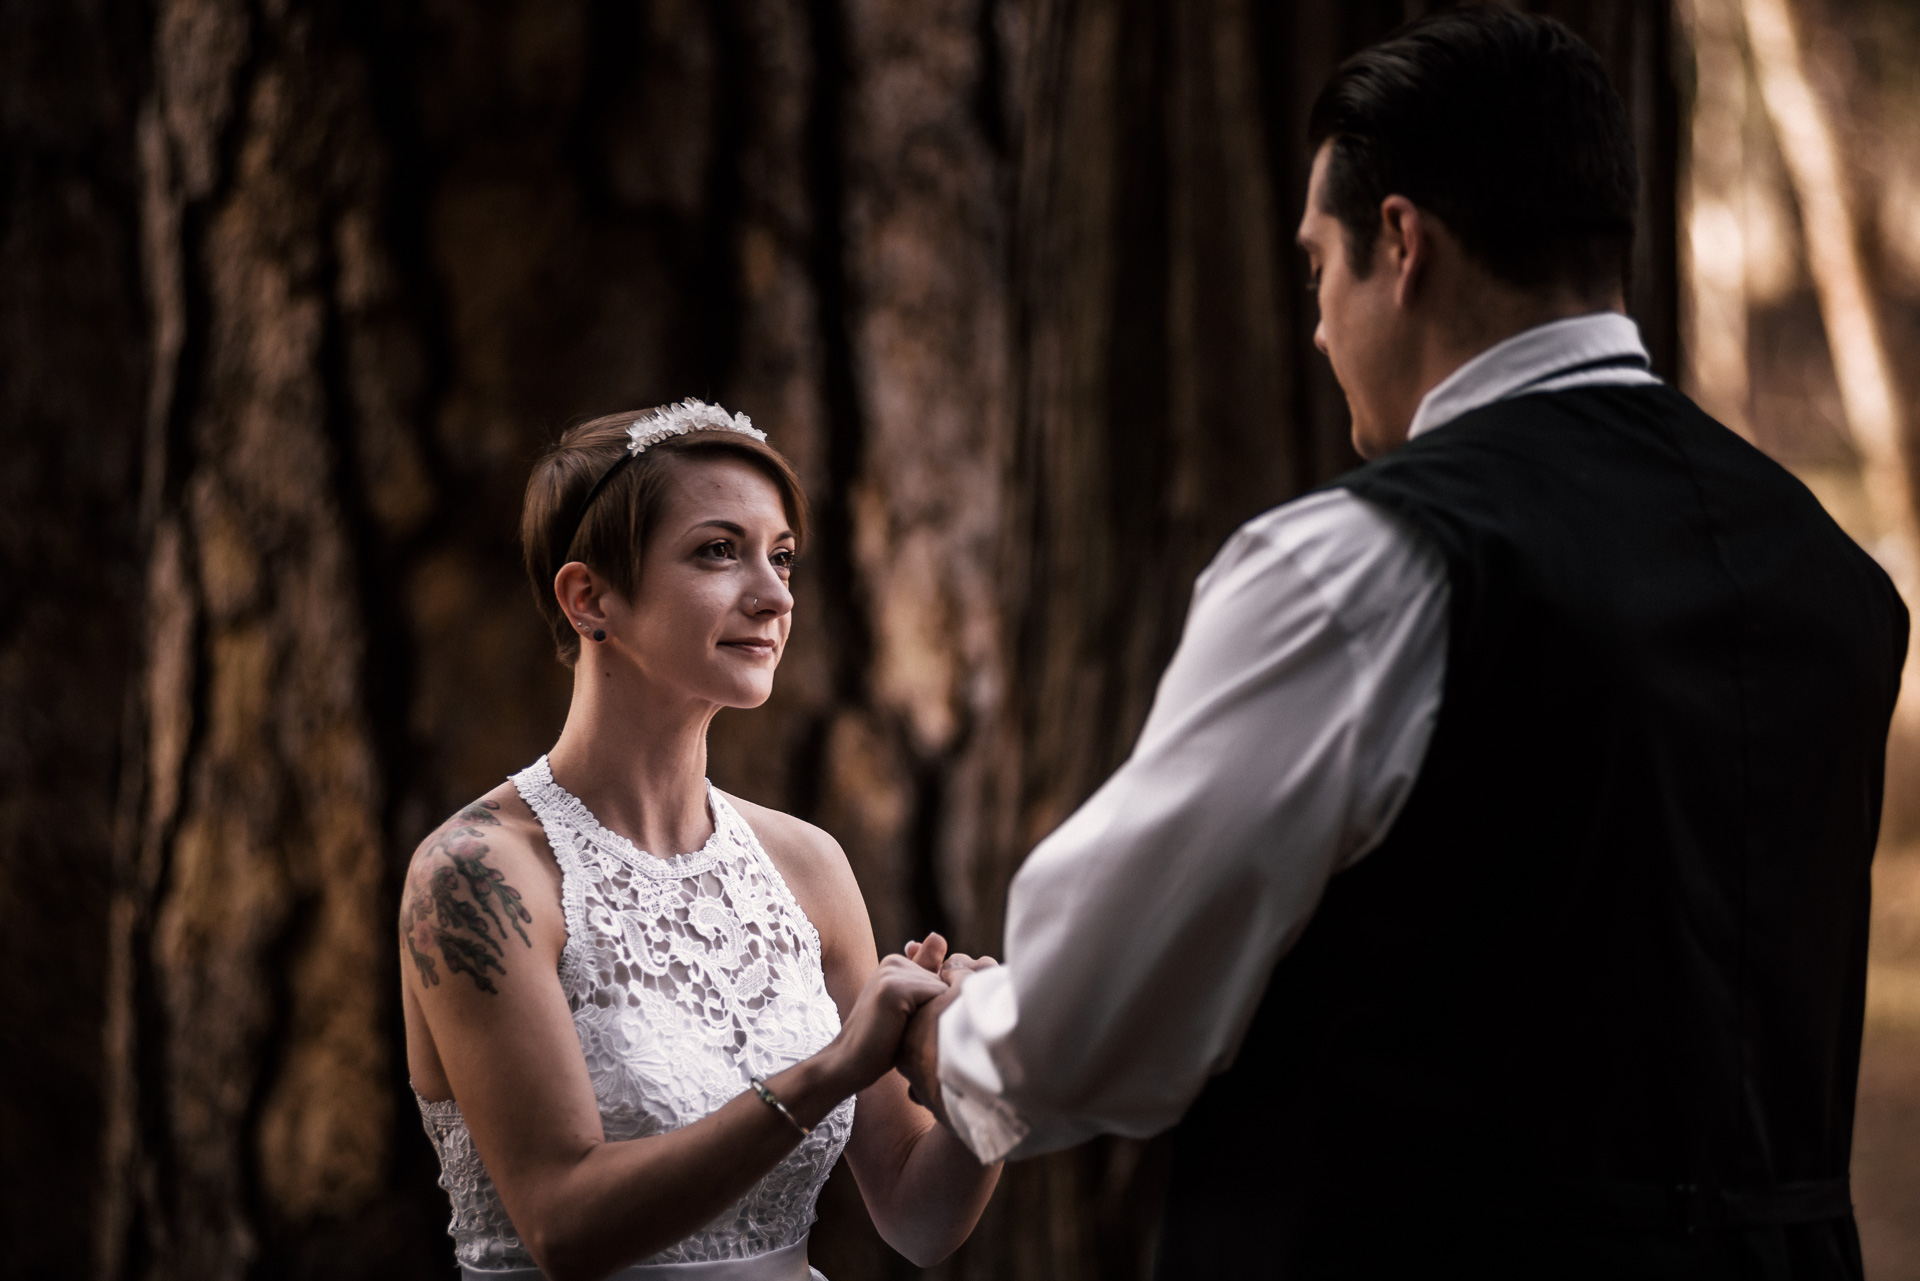 Sweet couple says their vows during yosemite elopement at swinging bridge